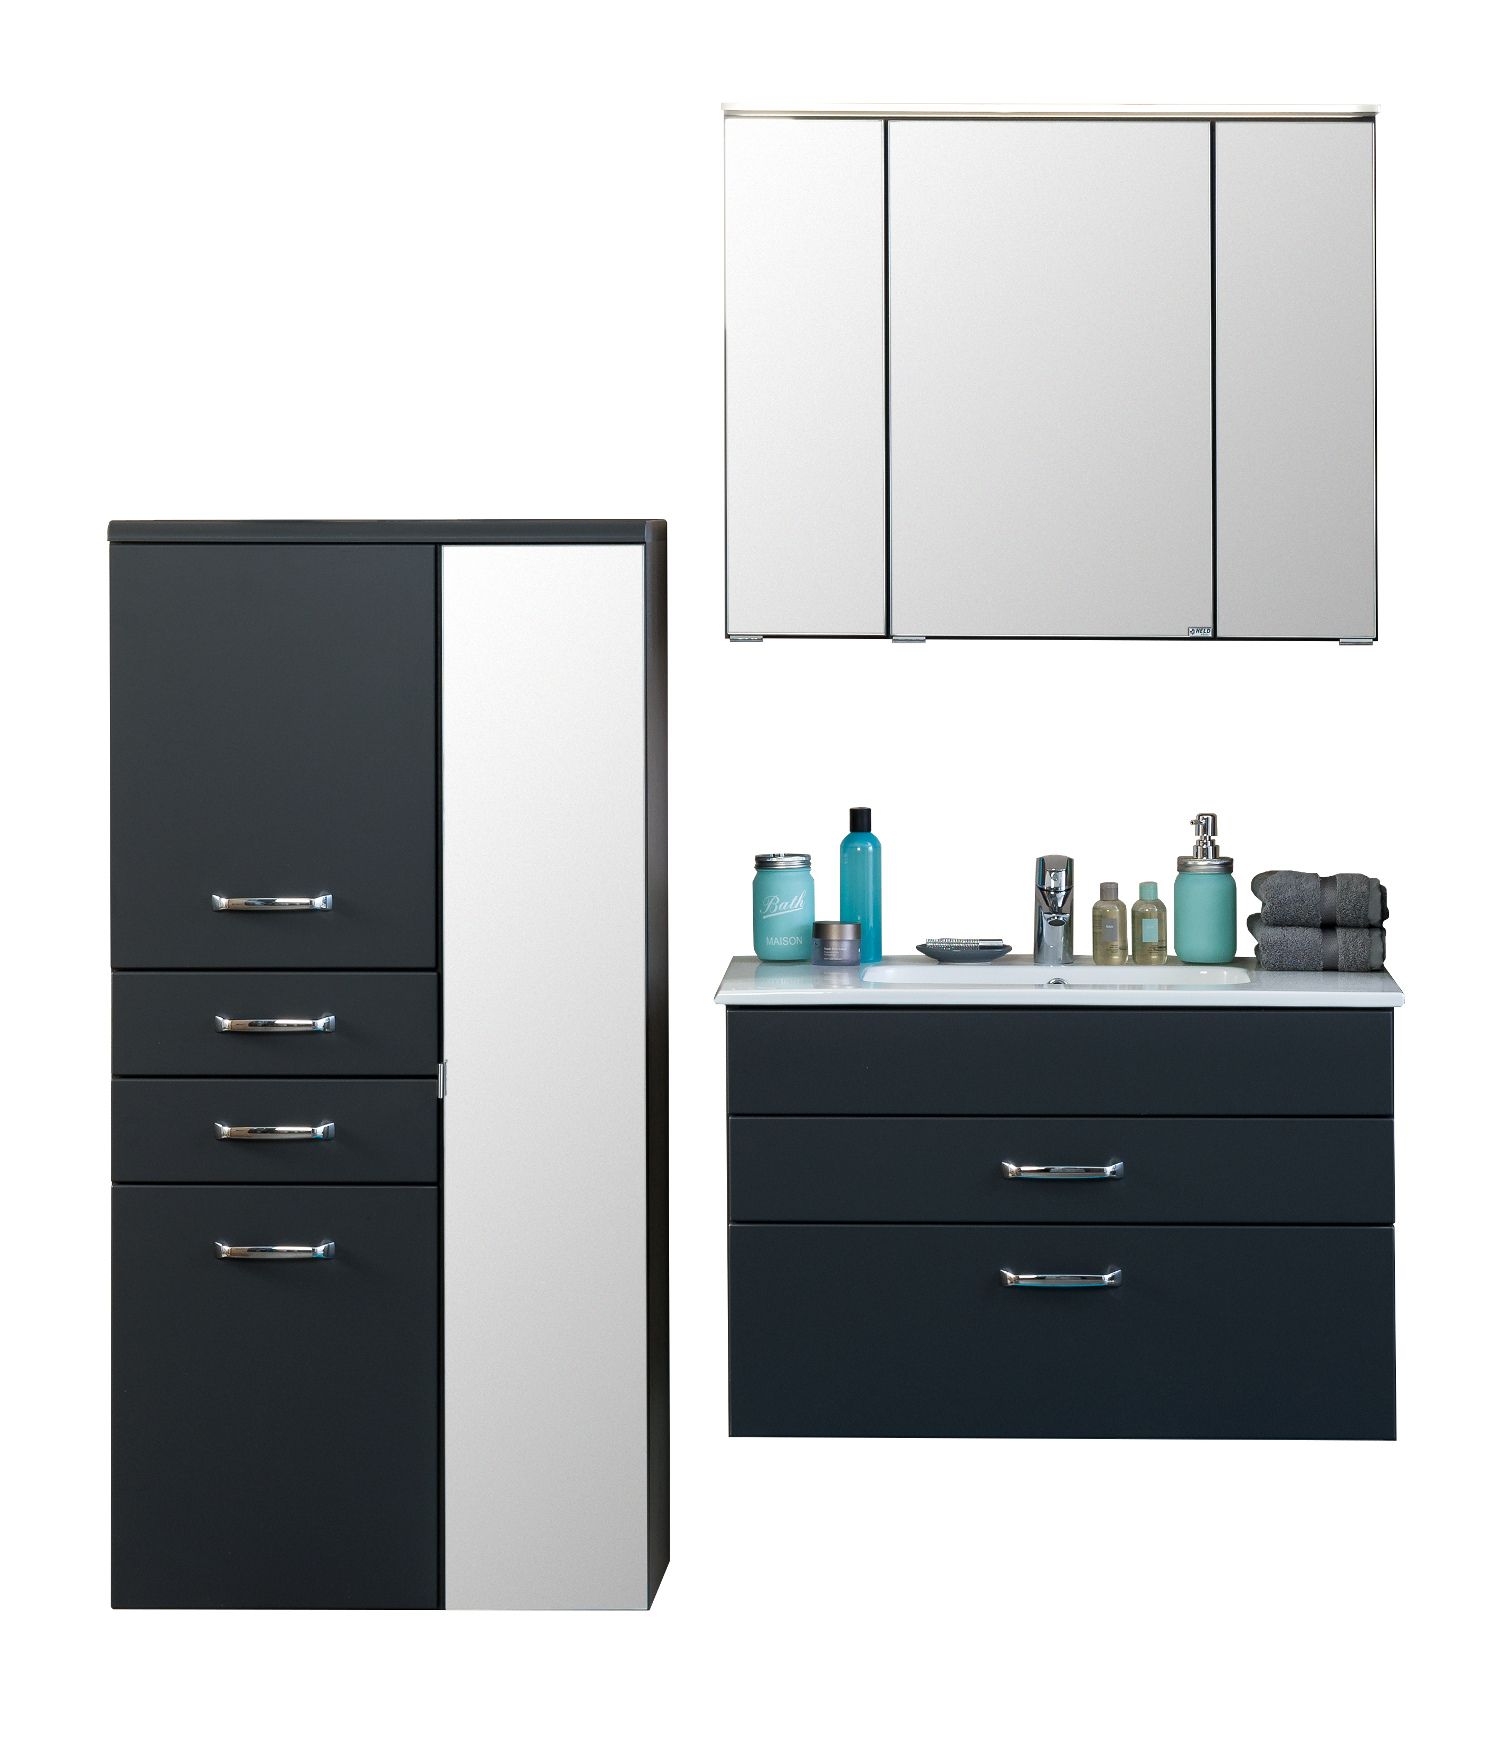 badm bel set fontana mit waschtisch 5 teilig 145 cm breit anthrazit bad badm belsets. Black Bedroom Furniture Sets. Home Design Ideas